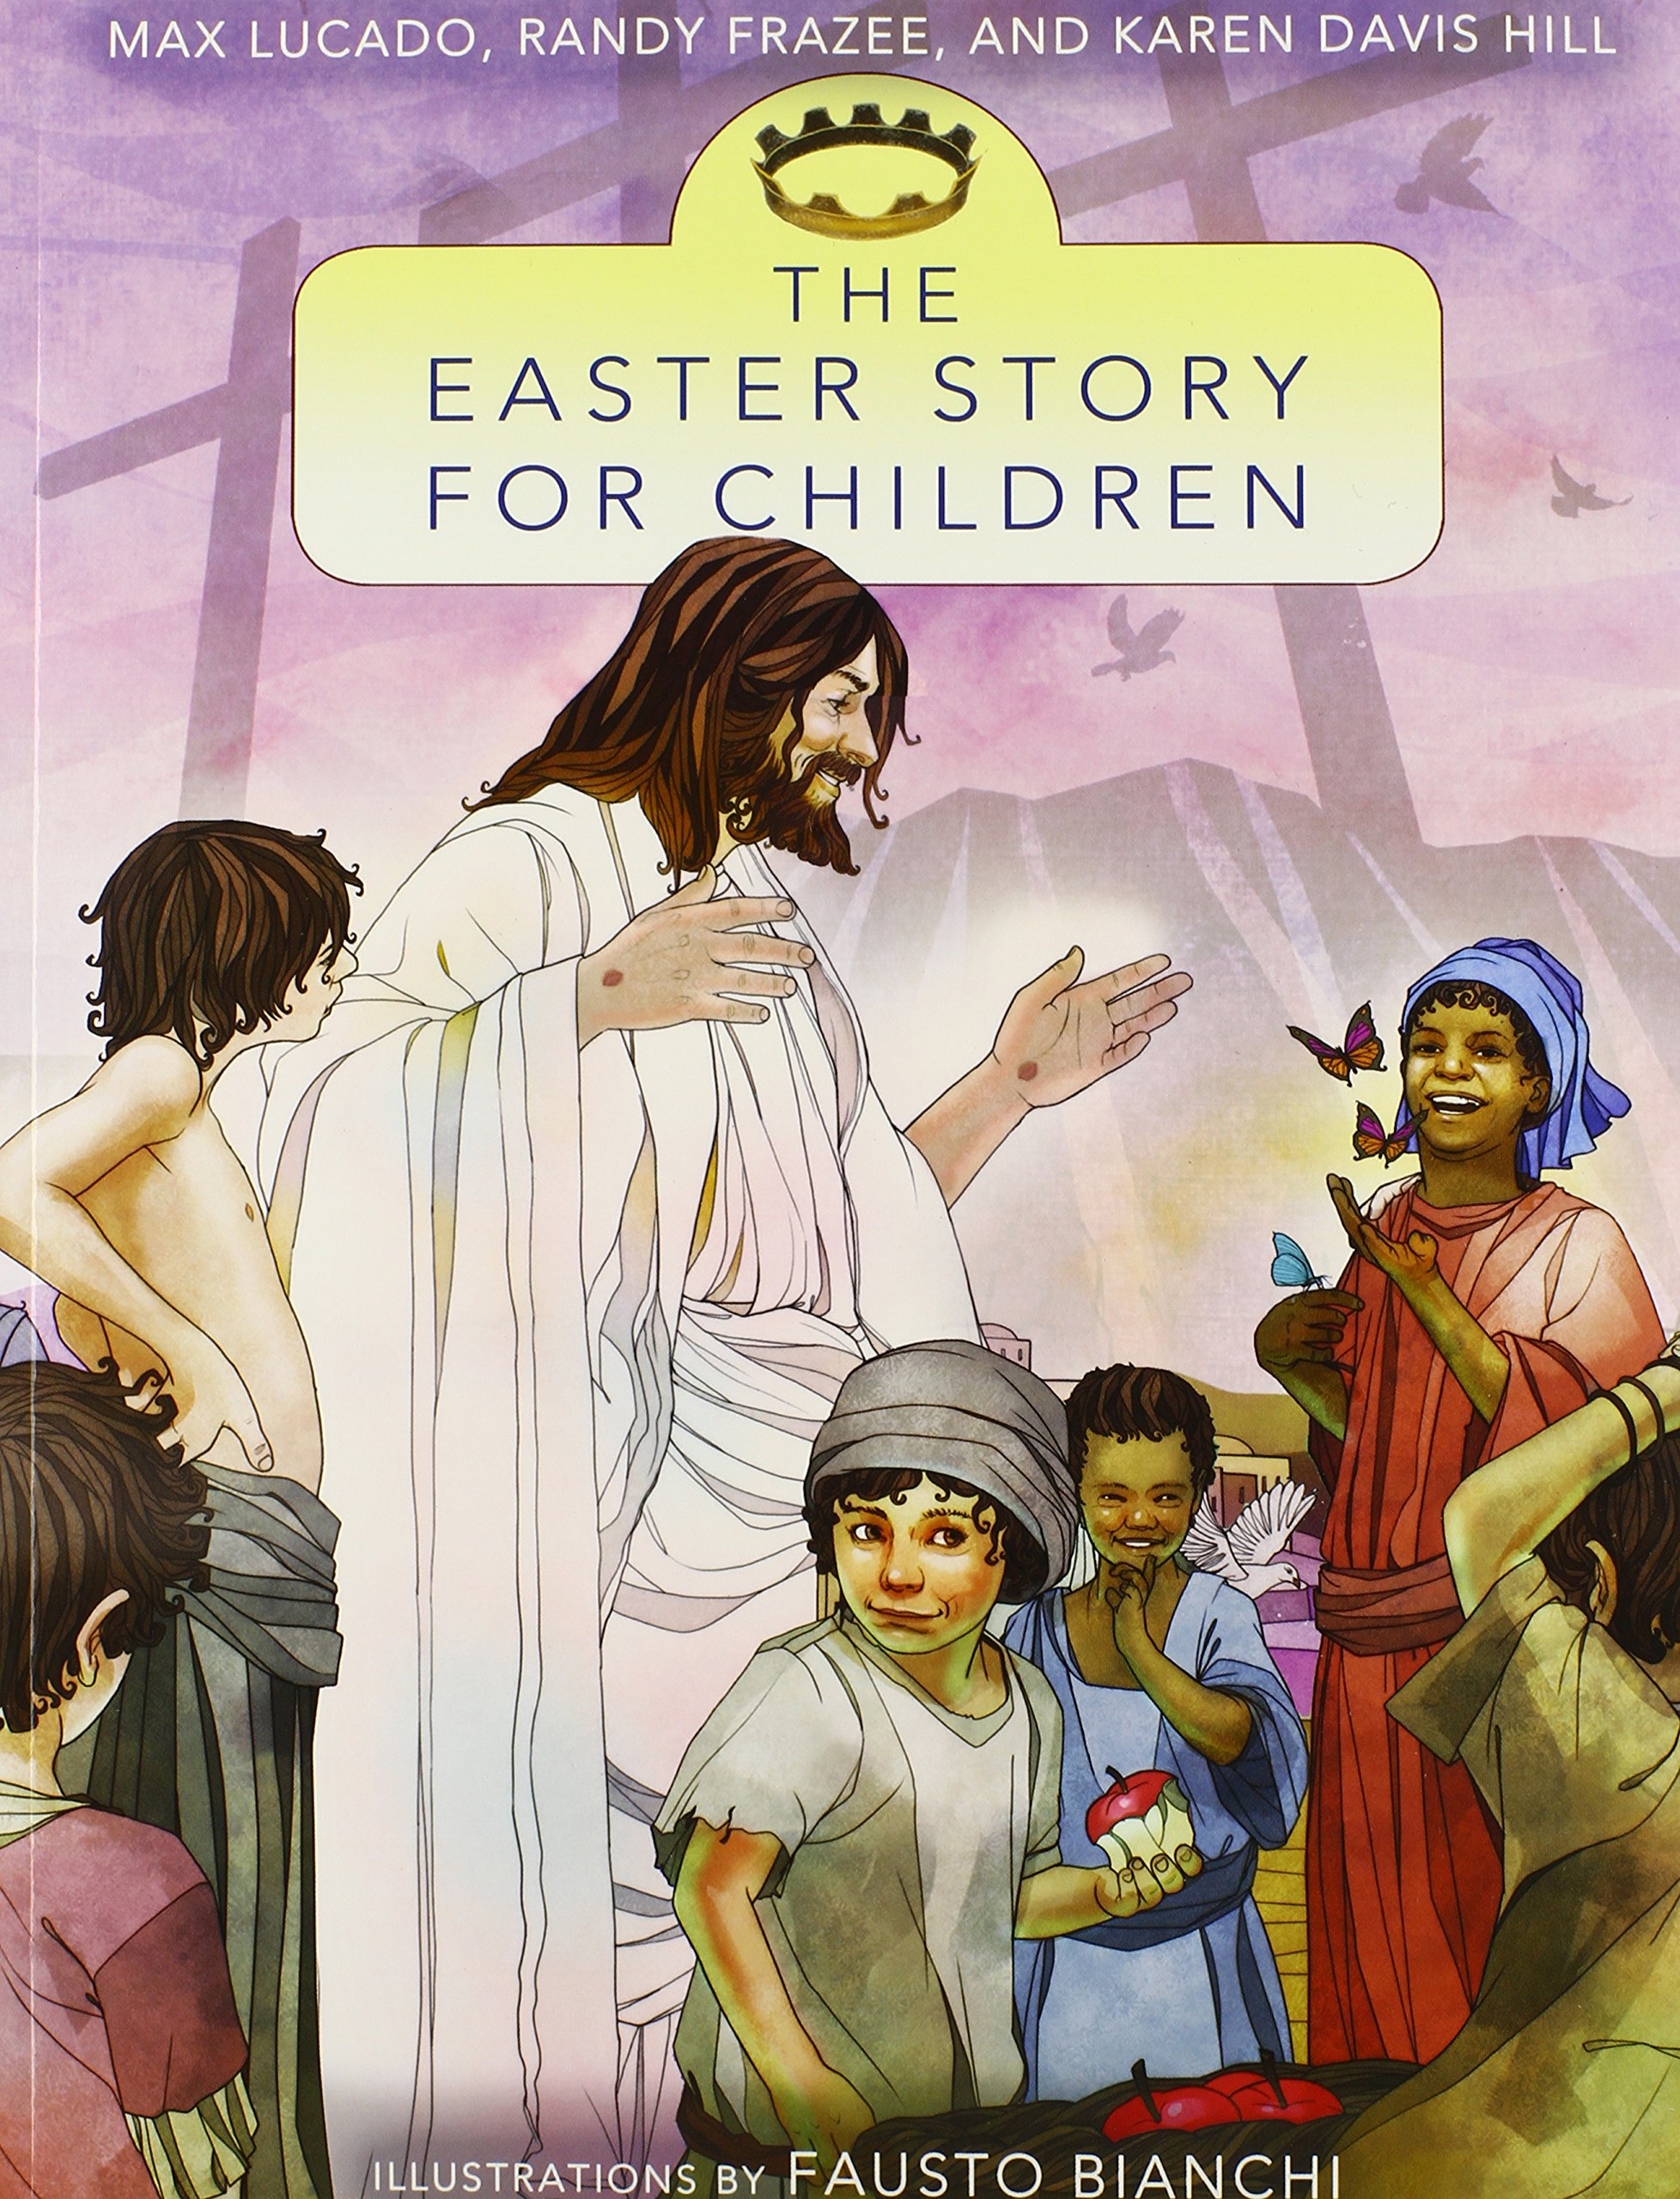 the easter story for children the story max lucado